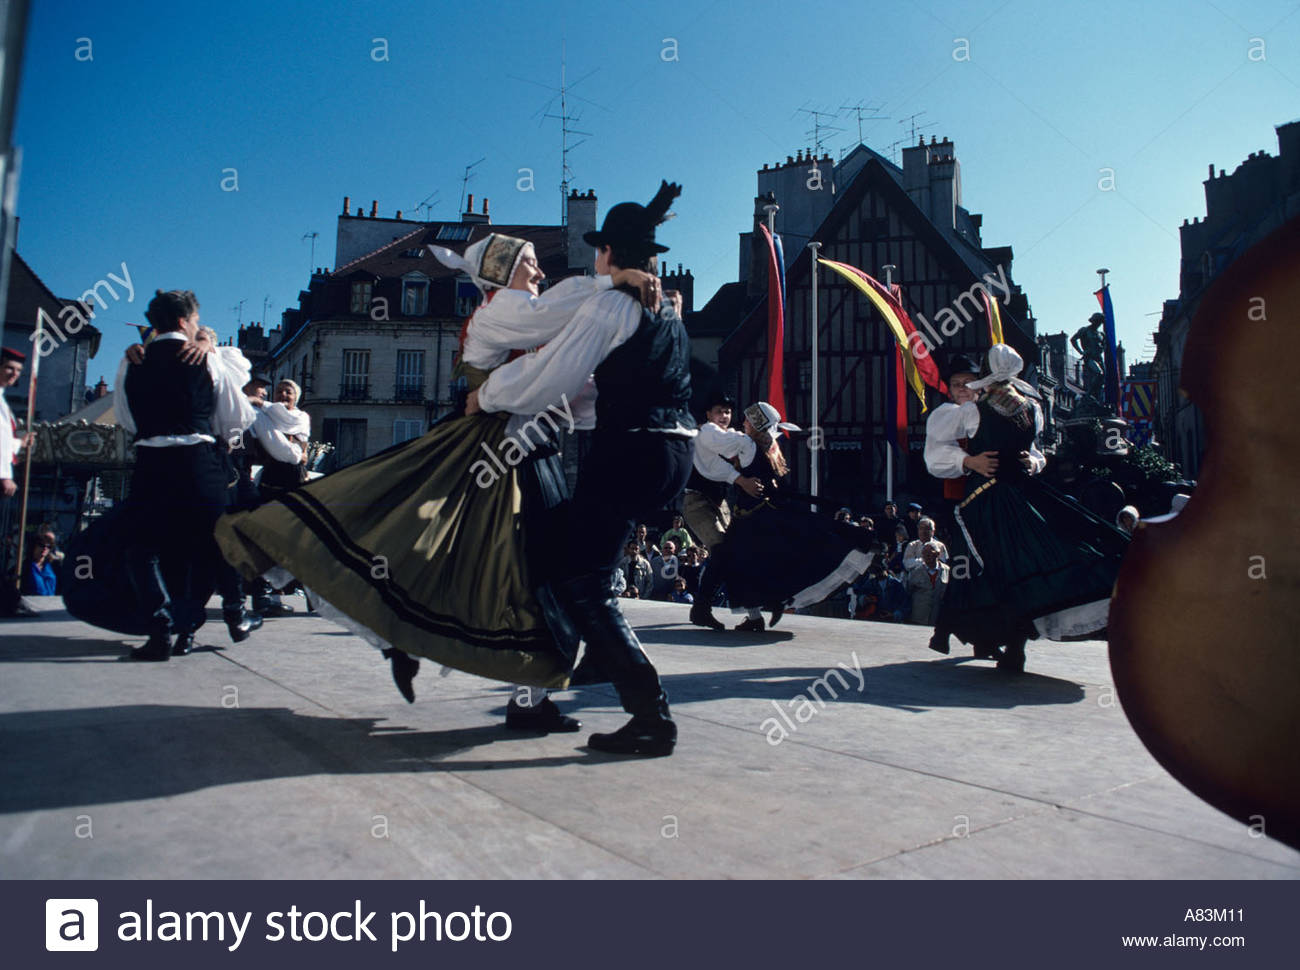 Couples dancing at a wine festival in Dijon, France Stock Photo